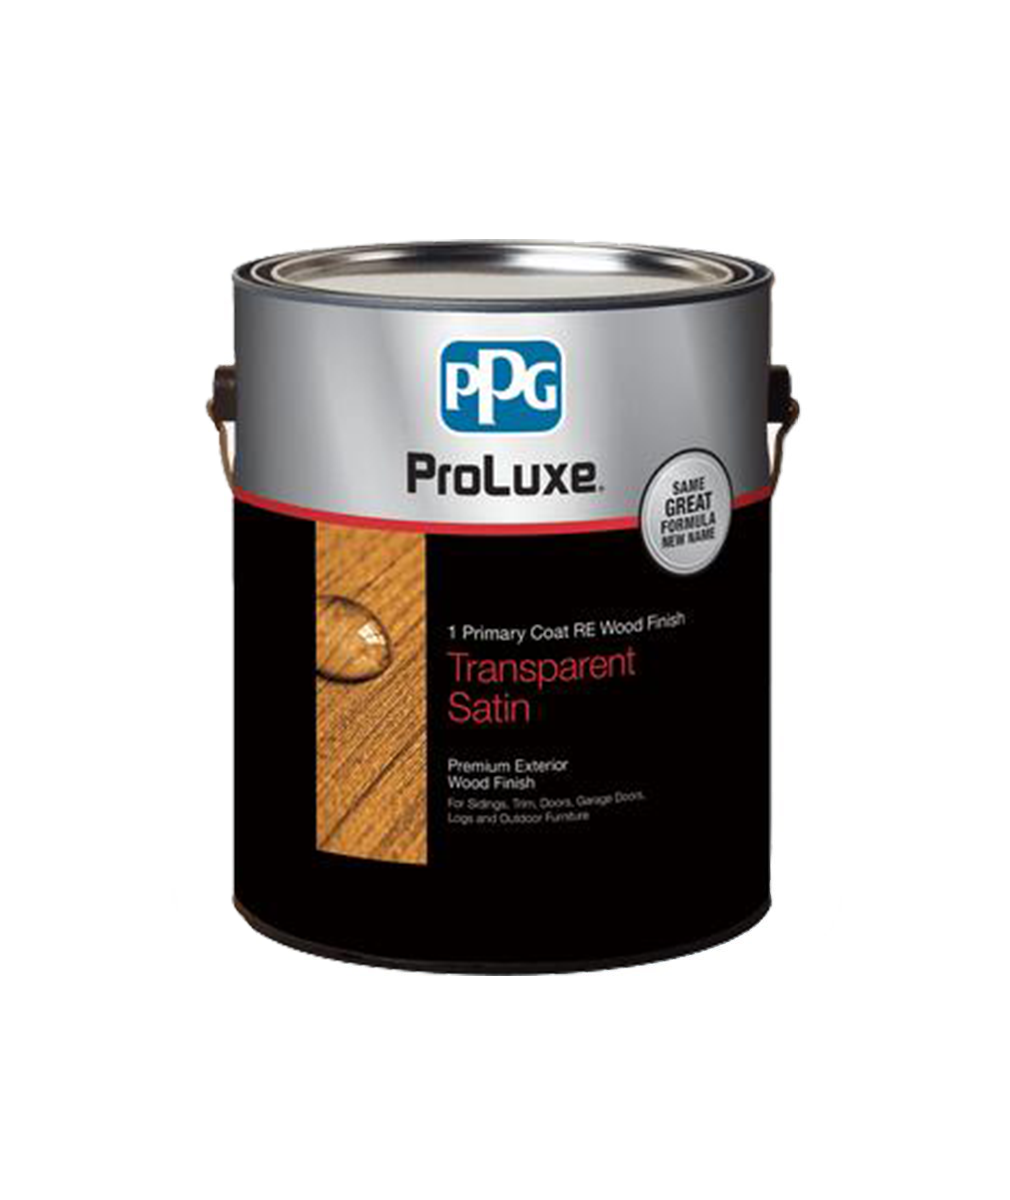 Proluxe Cetol 1 RE Wood Finish, available at Clement's Paint in Austin, TX.